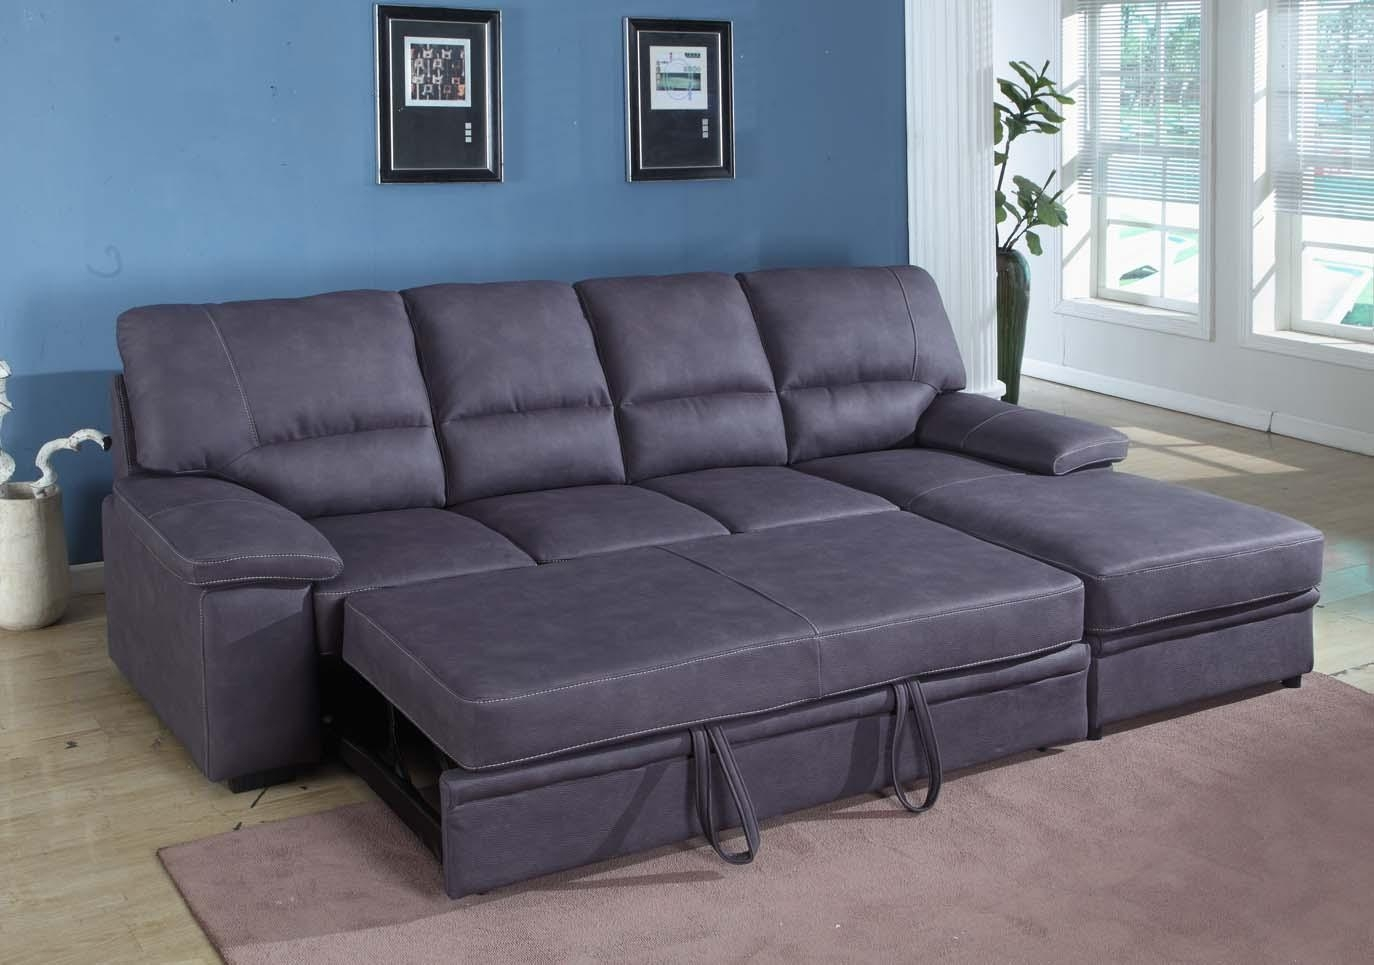 Grey Sleeper Sectional Sofa | Houston Mattress King Inside Sectional Sofas With Sleeper And Chaise (View 3 of 21)